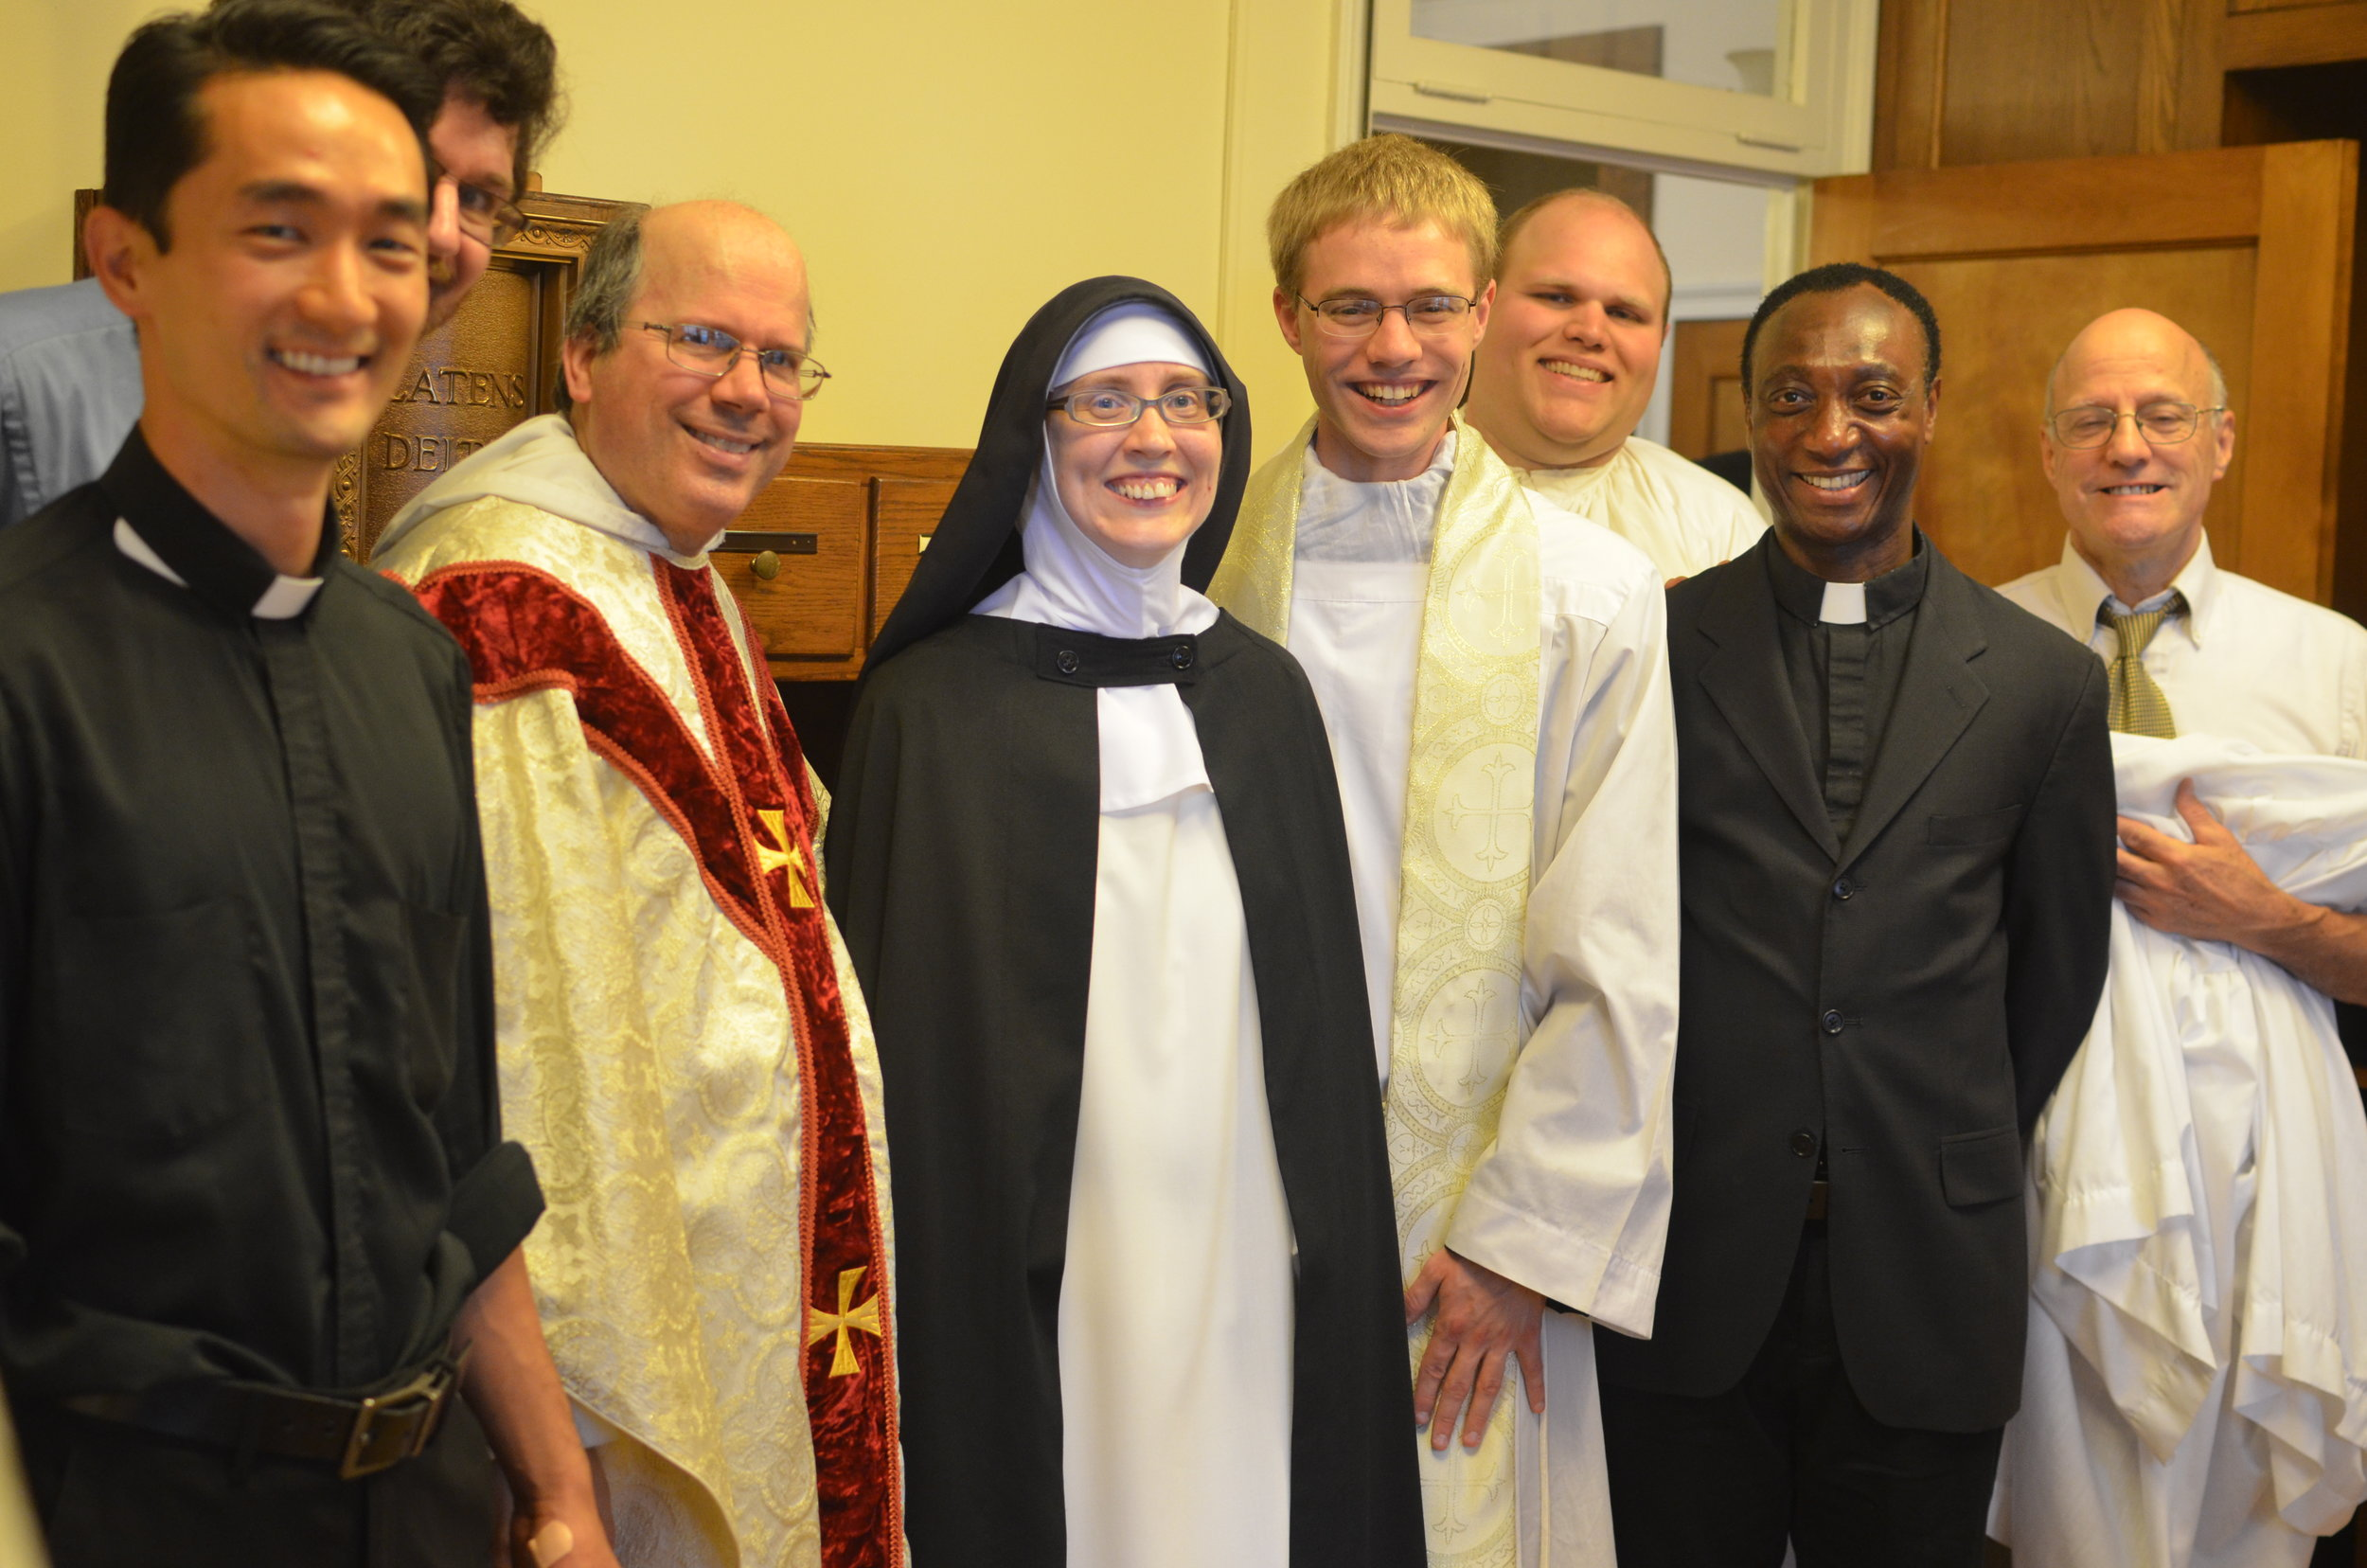 Sister with some of the priests and acolytes after Mass